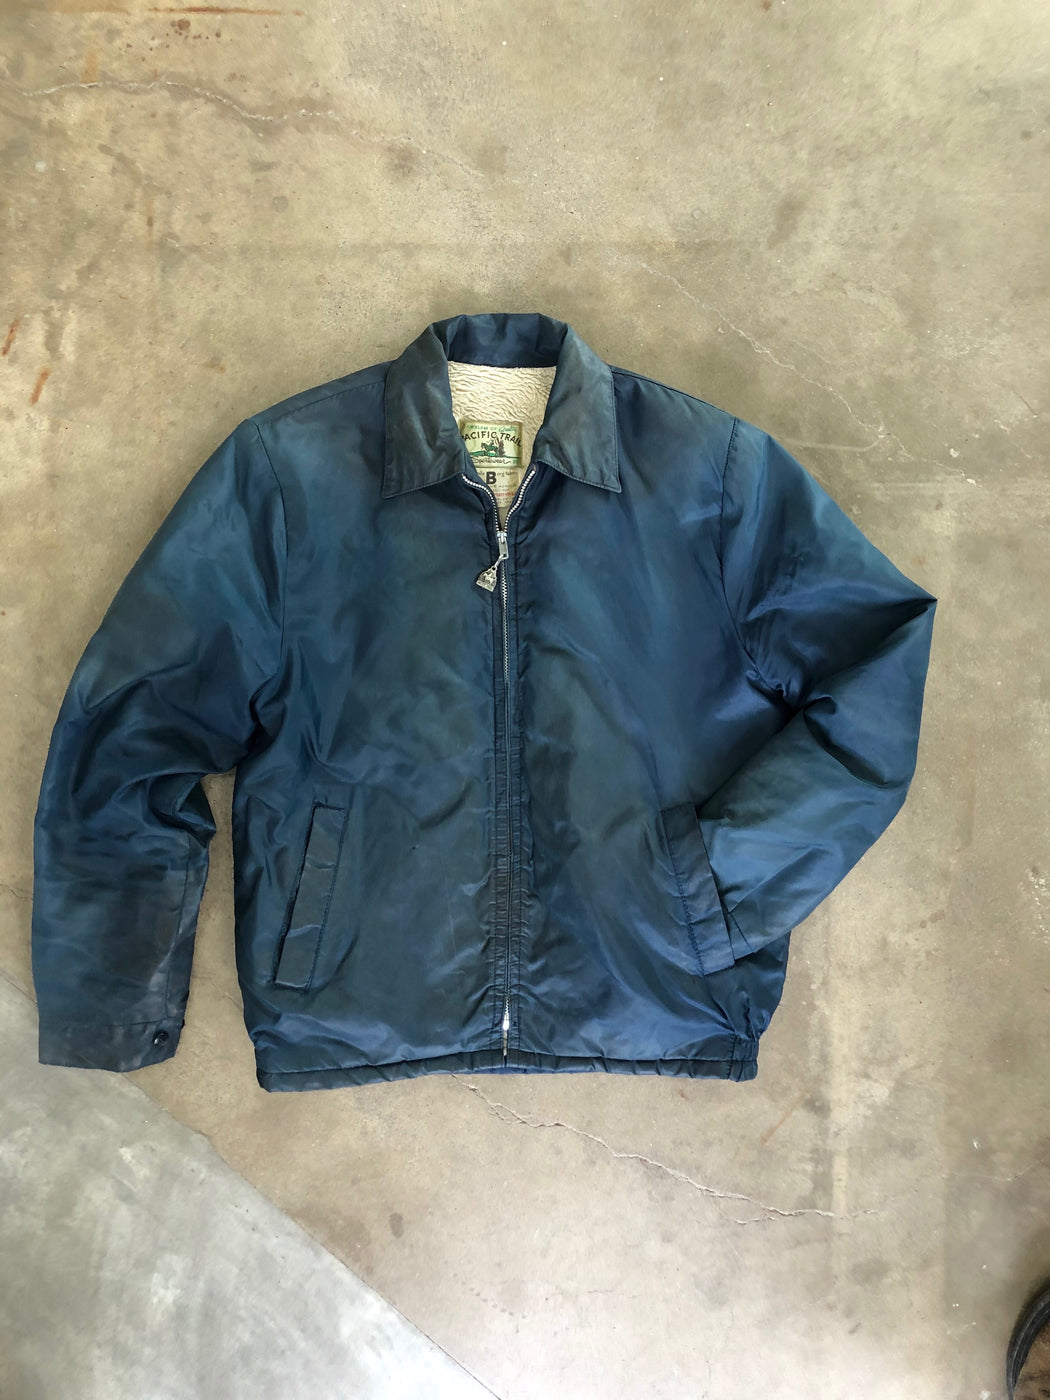 Pacific Trail Vintage Bomber